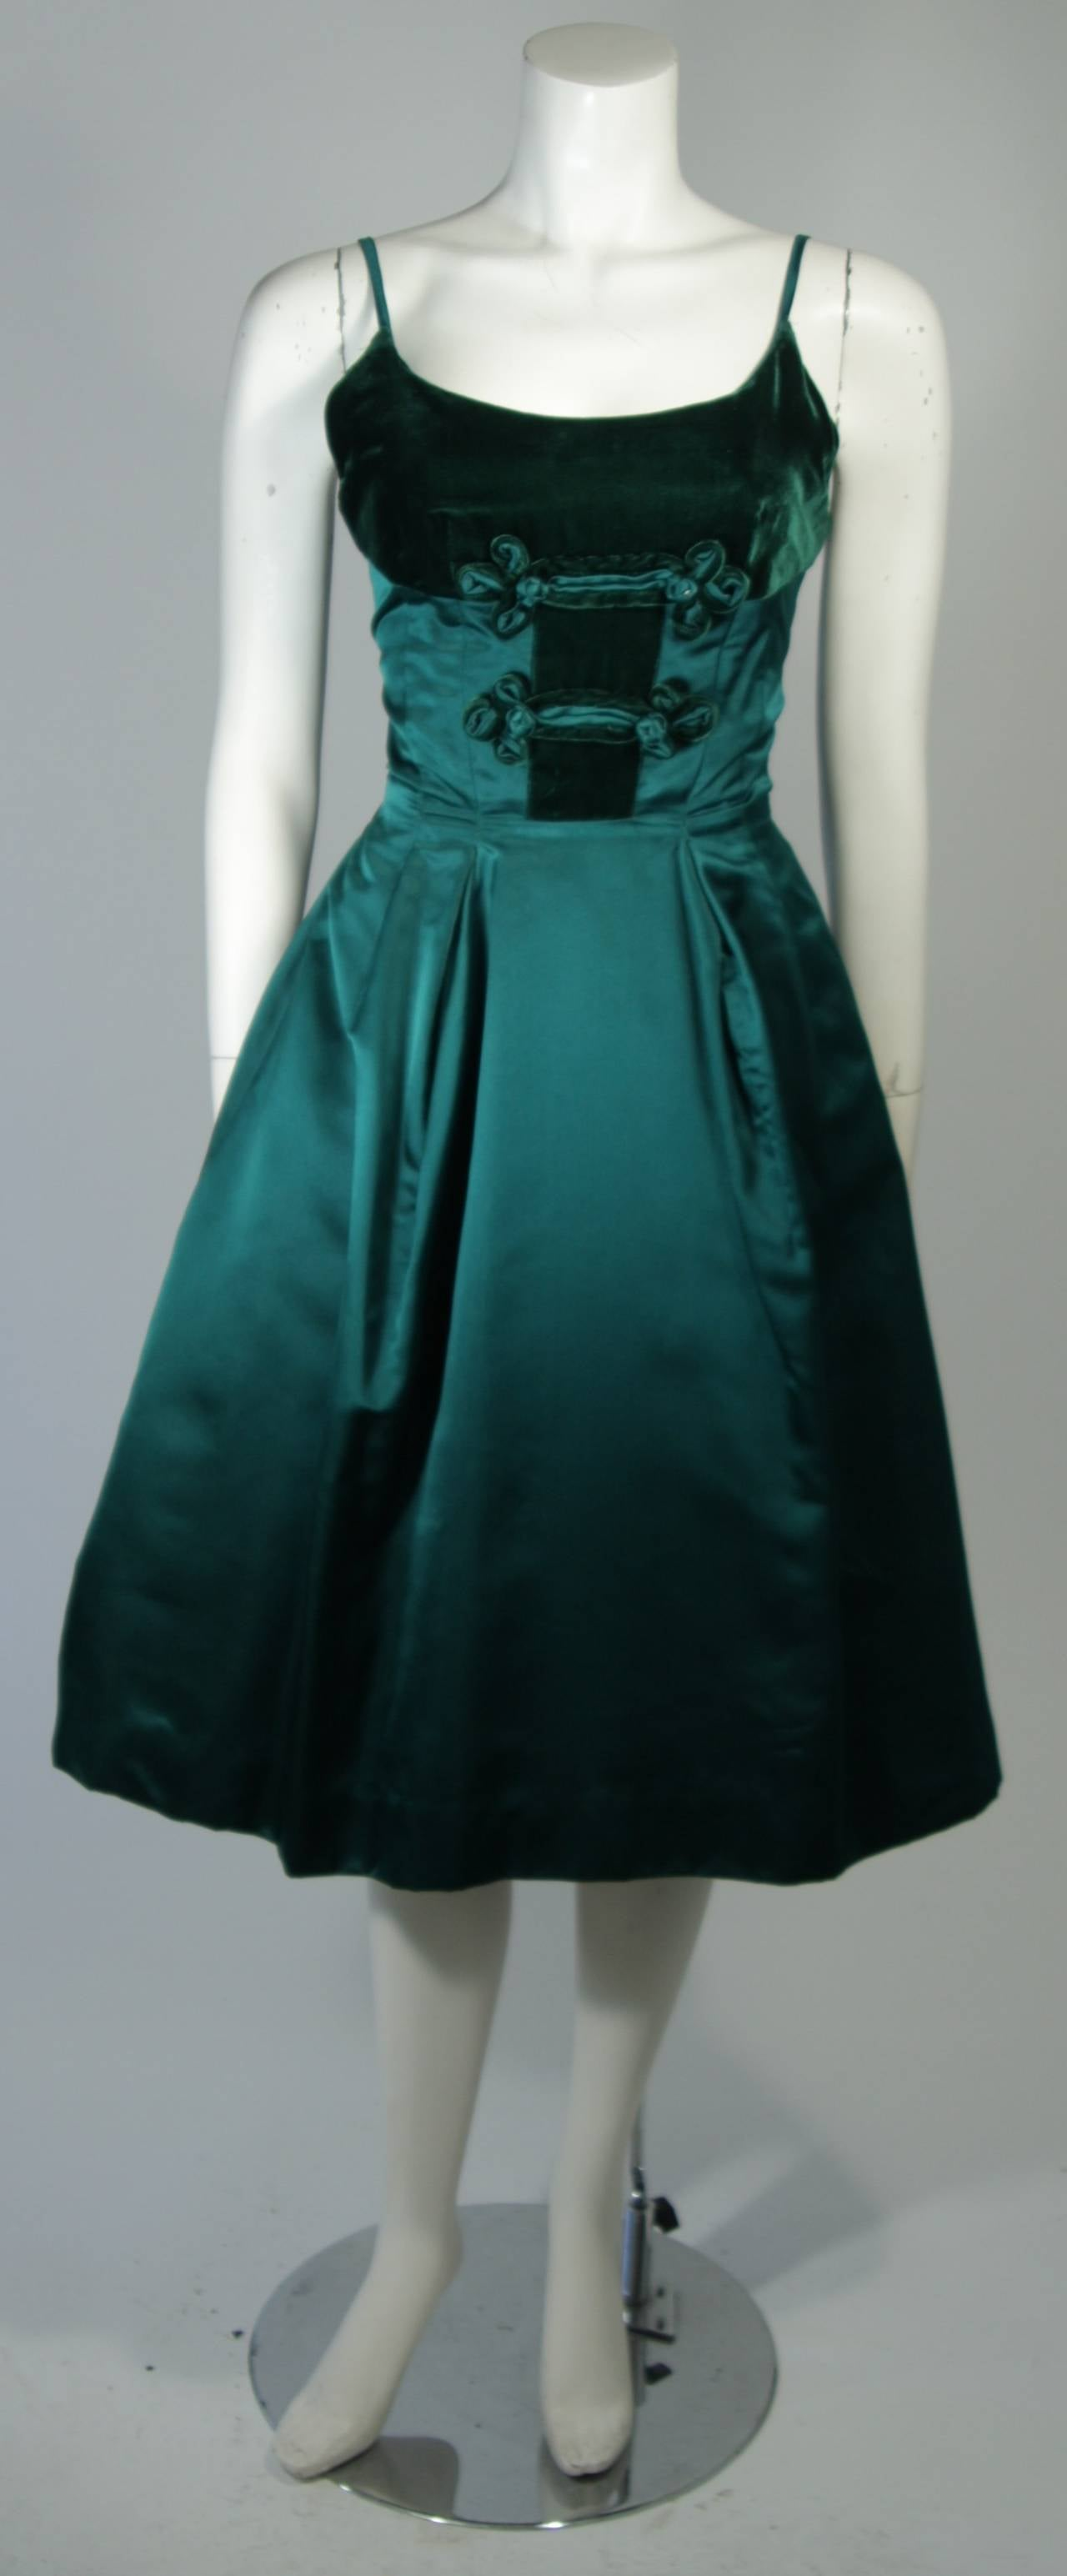 This Oleg Cassini cocktail dress is fashioned from a superb green velvet and satin combination which features a bust applique. There are spaghetti straps, full skirt, and a center back zipper. In excellent vintage condition.  